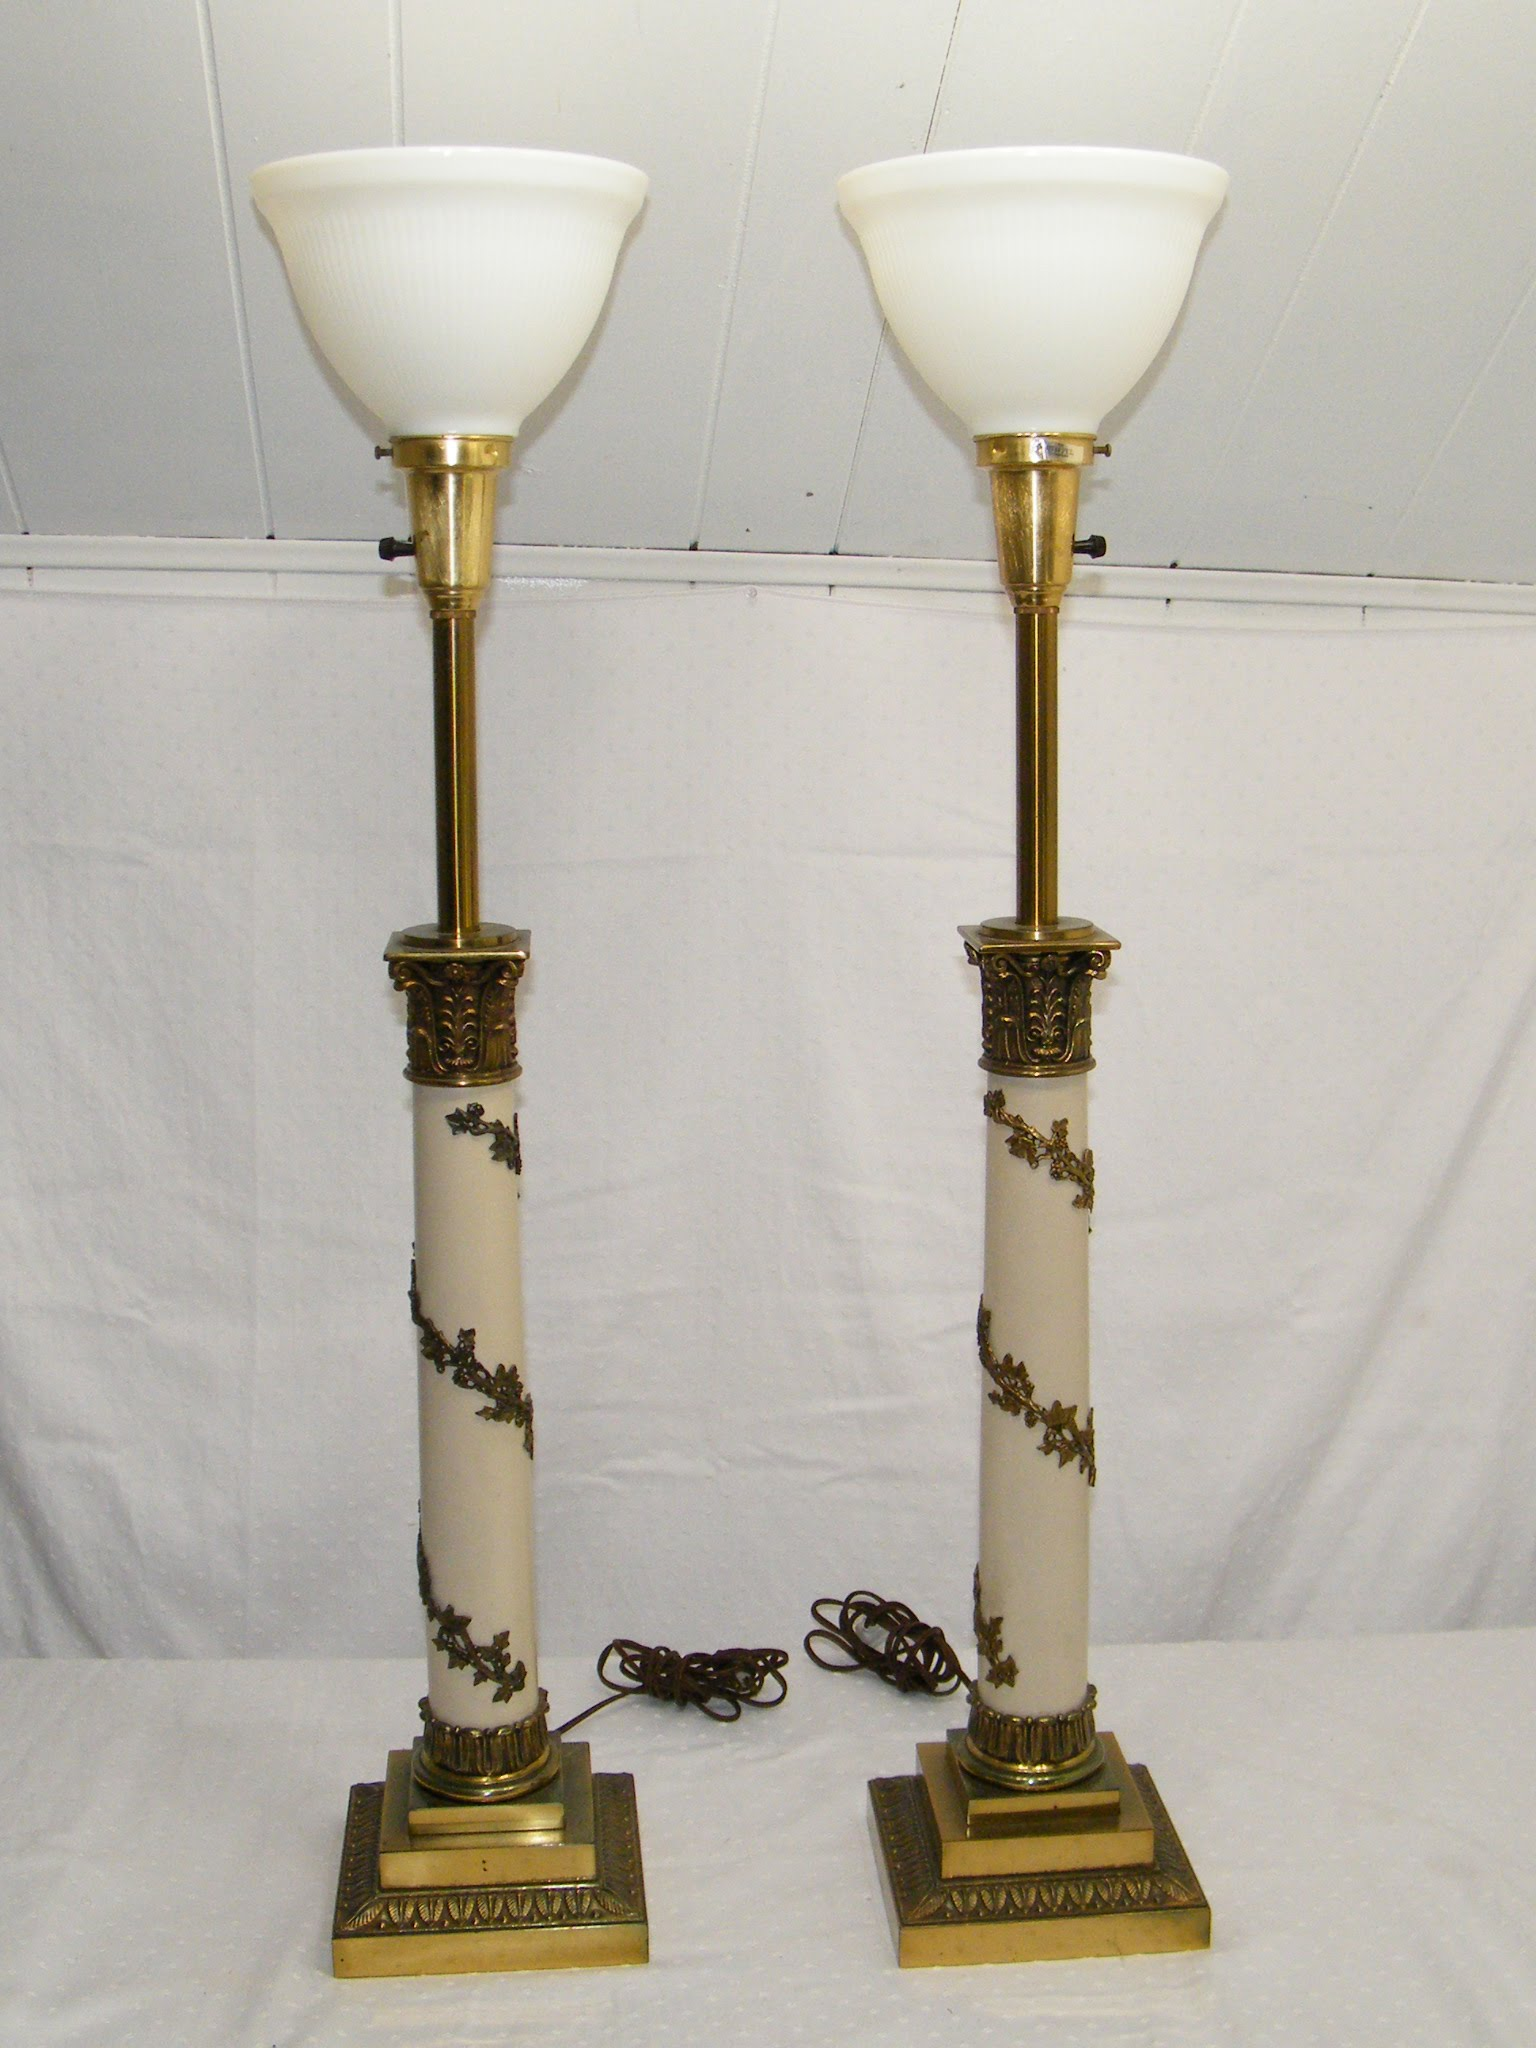 Stiffel Brass Table Lamps 10 Tipps For Choosing